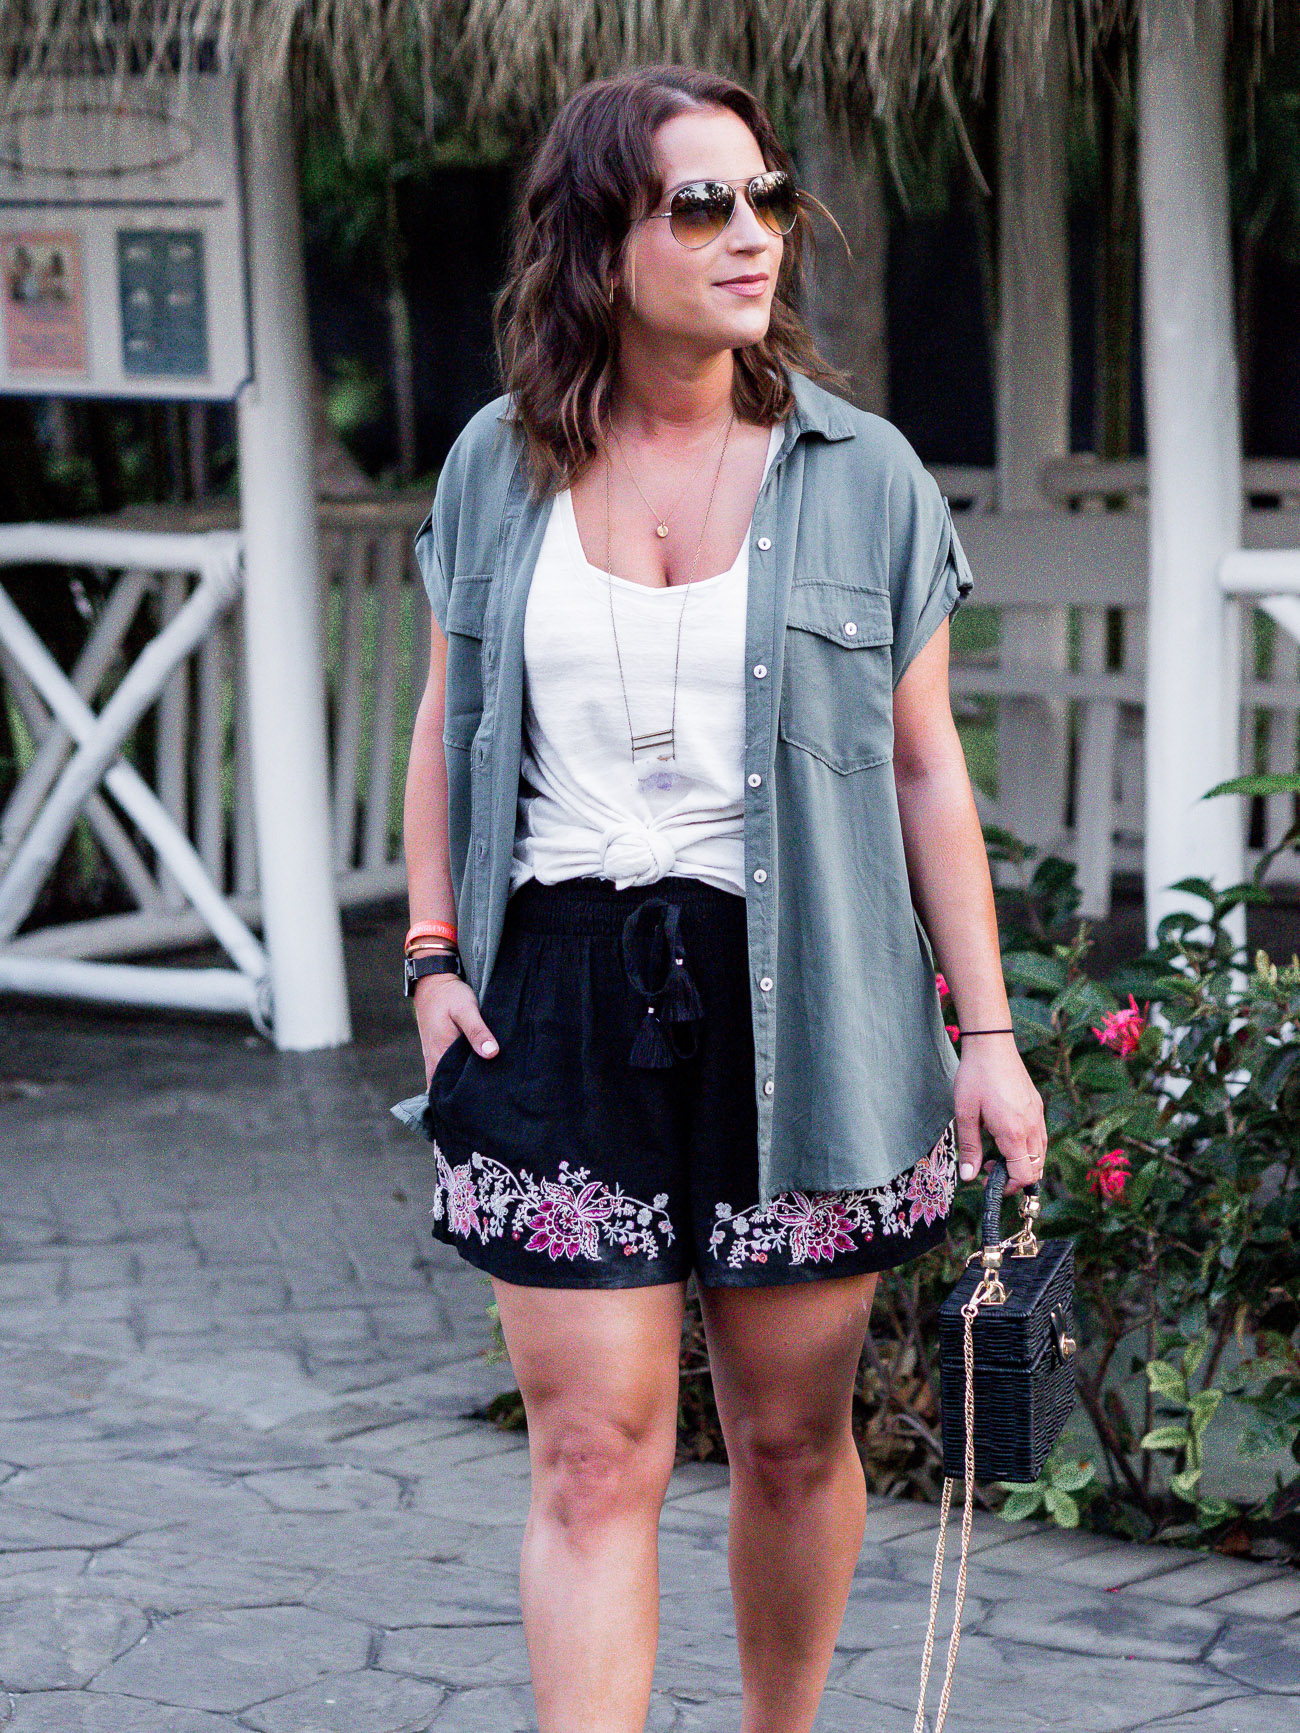 Lifestyle and fashion blogger, Jackie From Something About That, is wearing a vacation outfit!